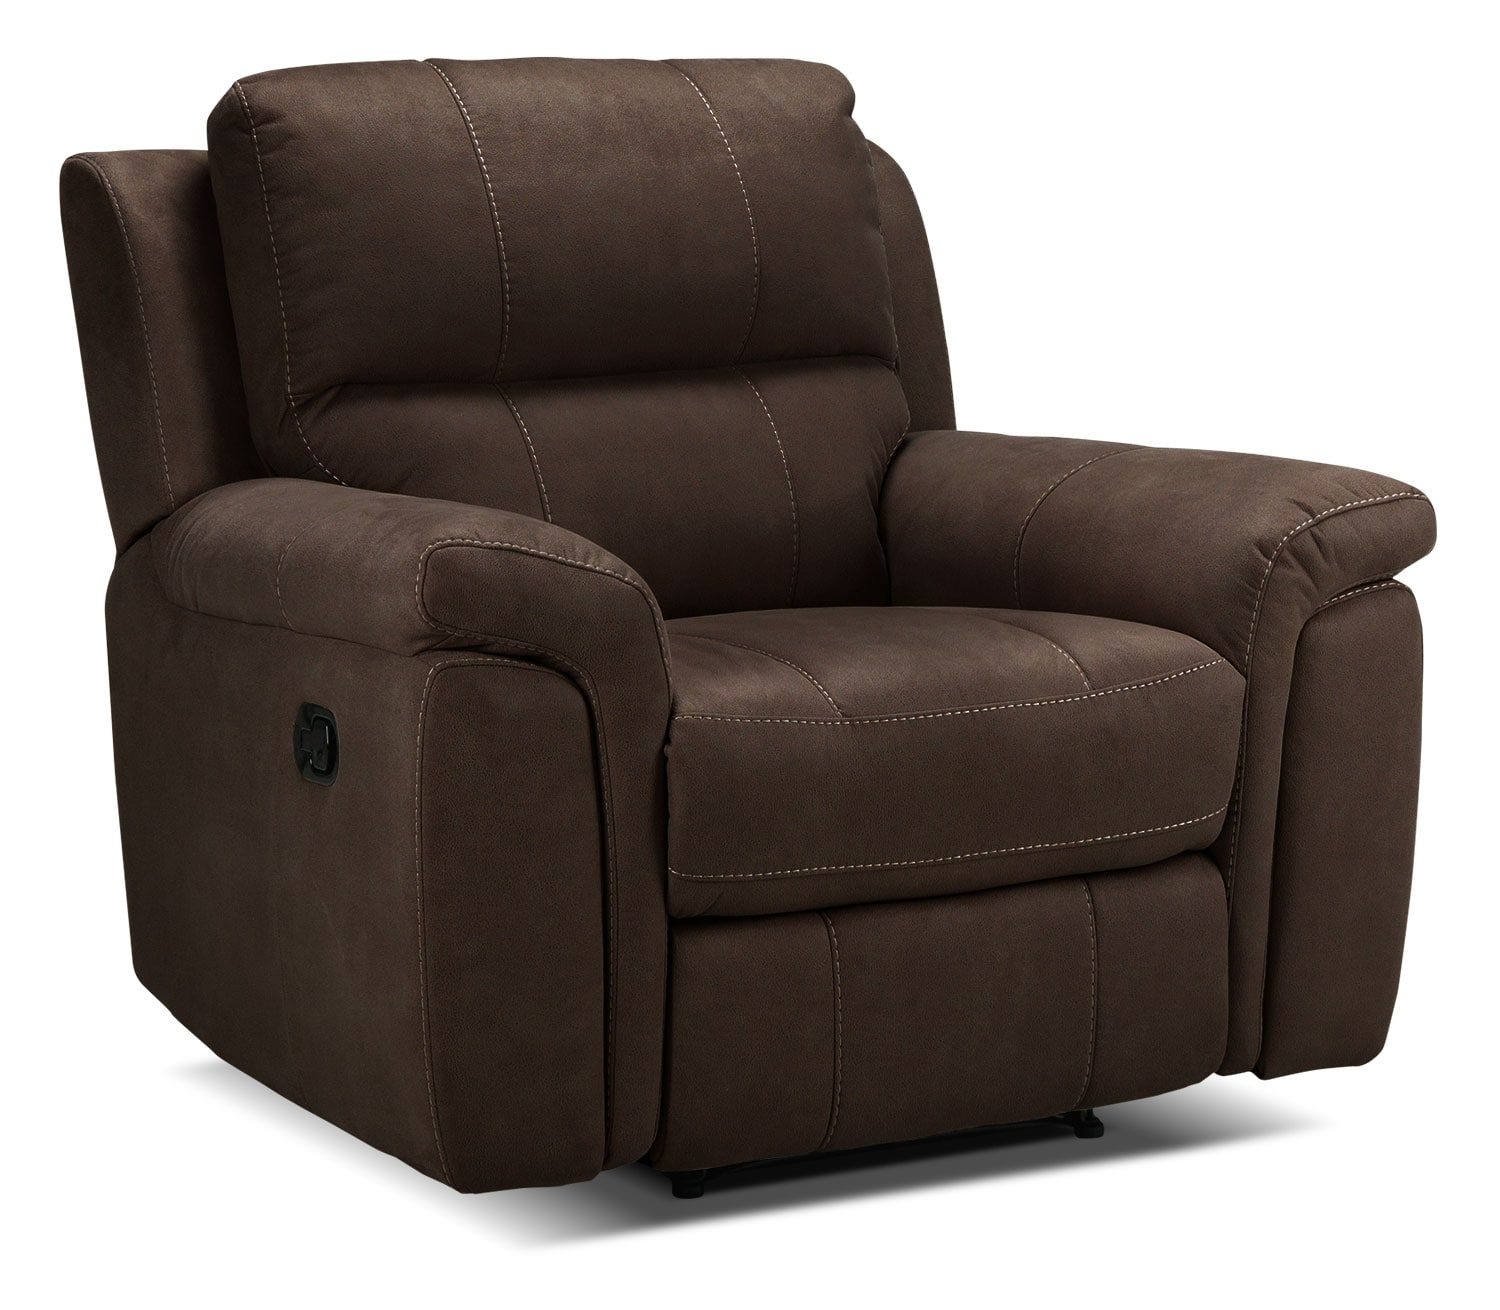 Roarke Recliner - Walnut